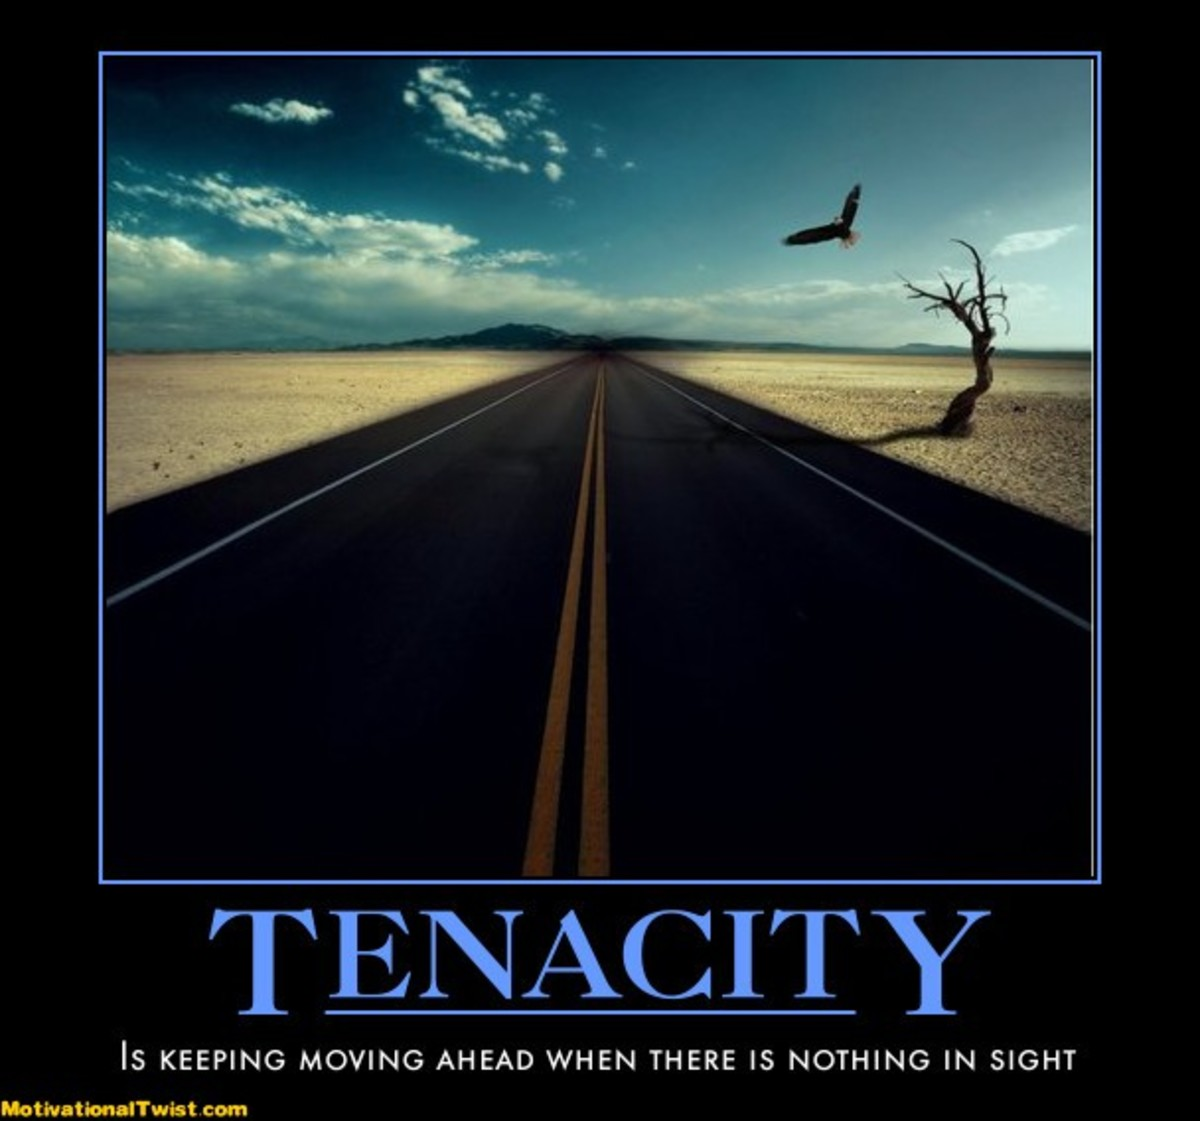 How can we show tenacity in the face of adversity?